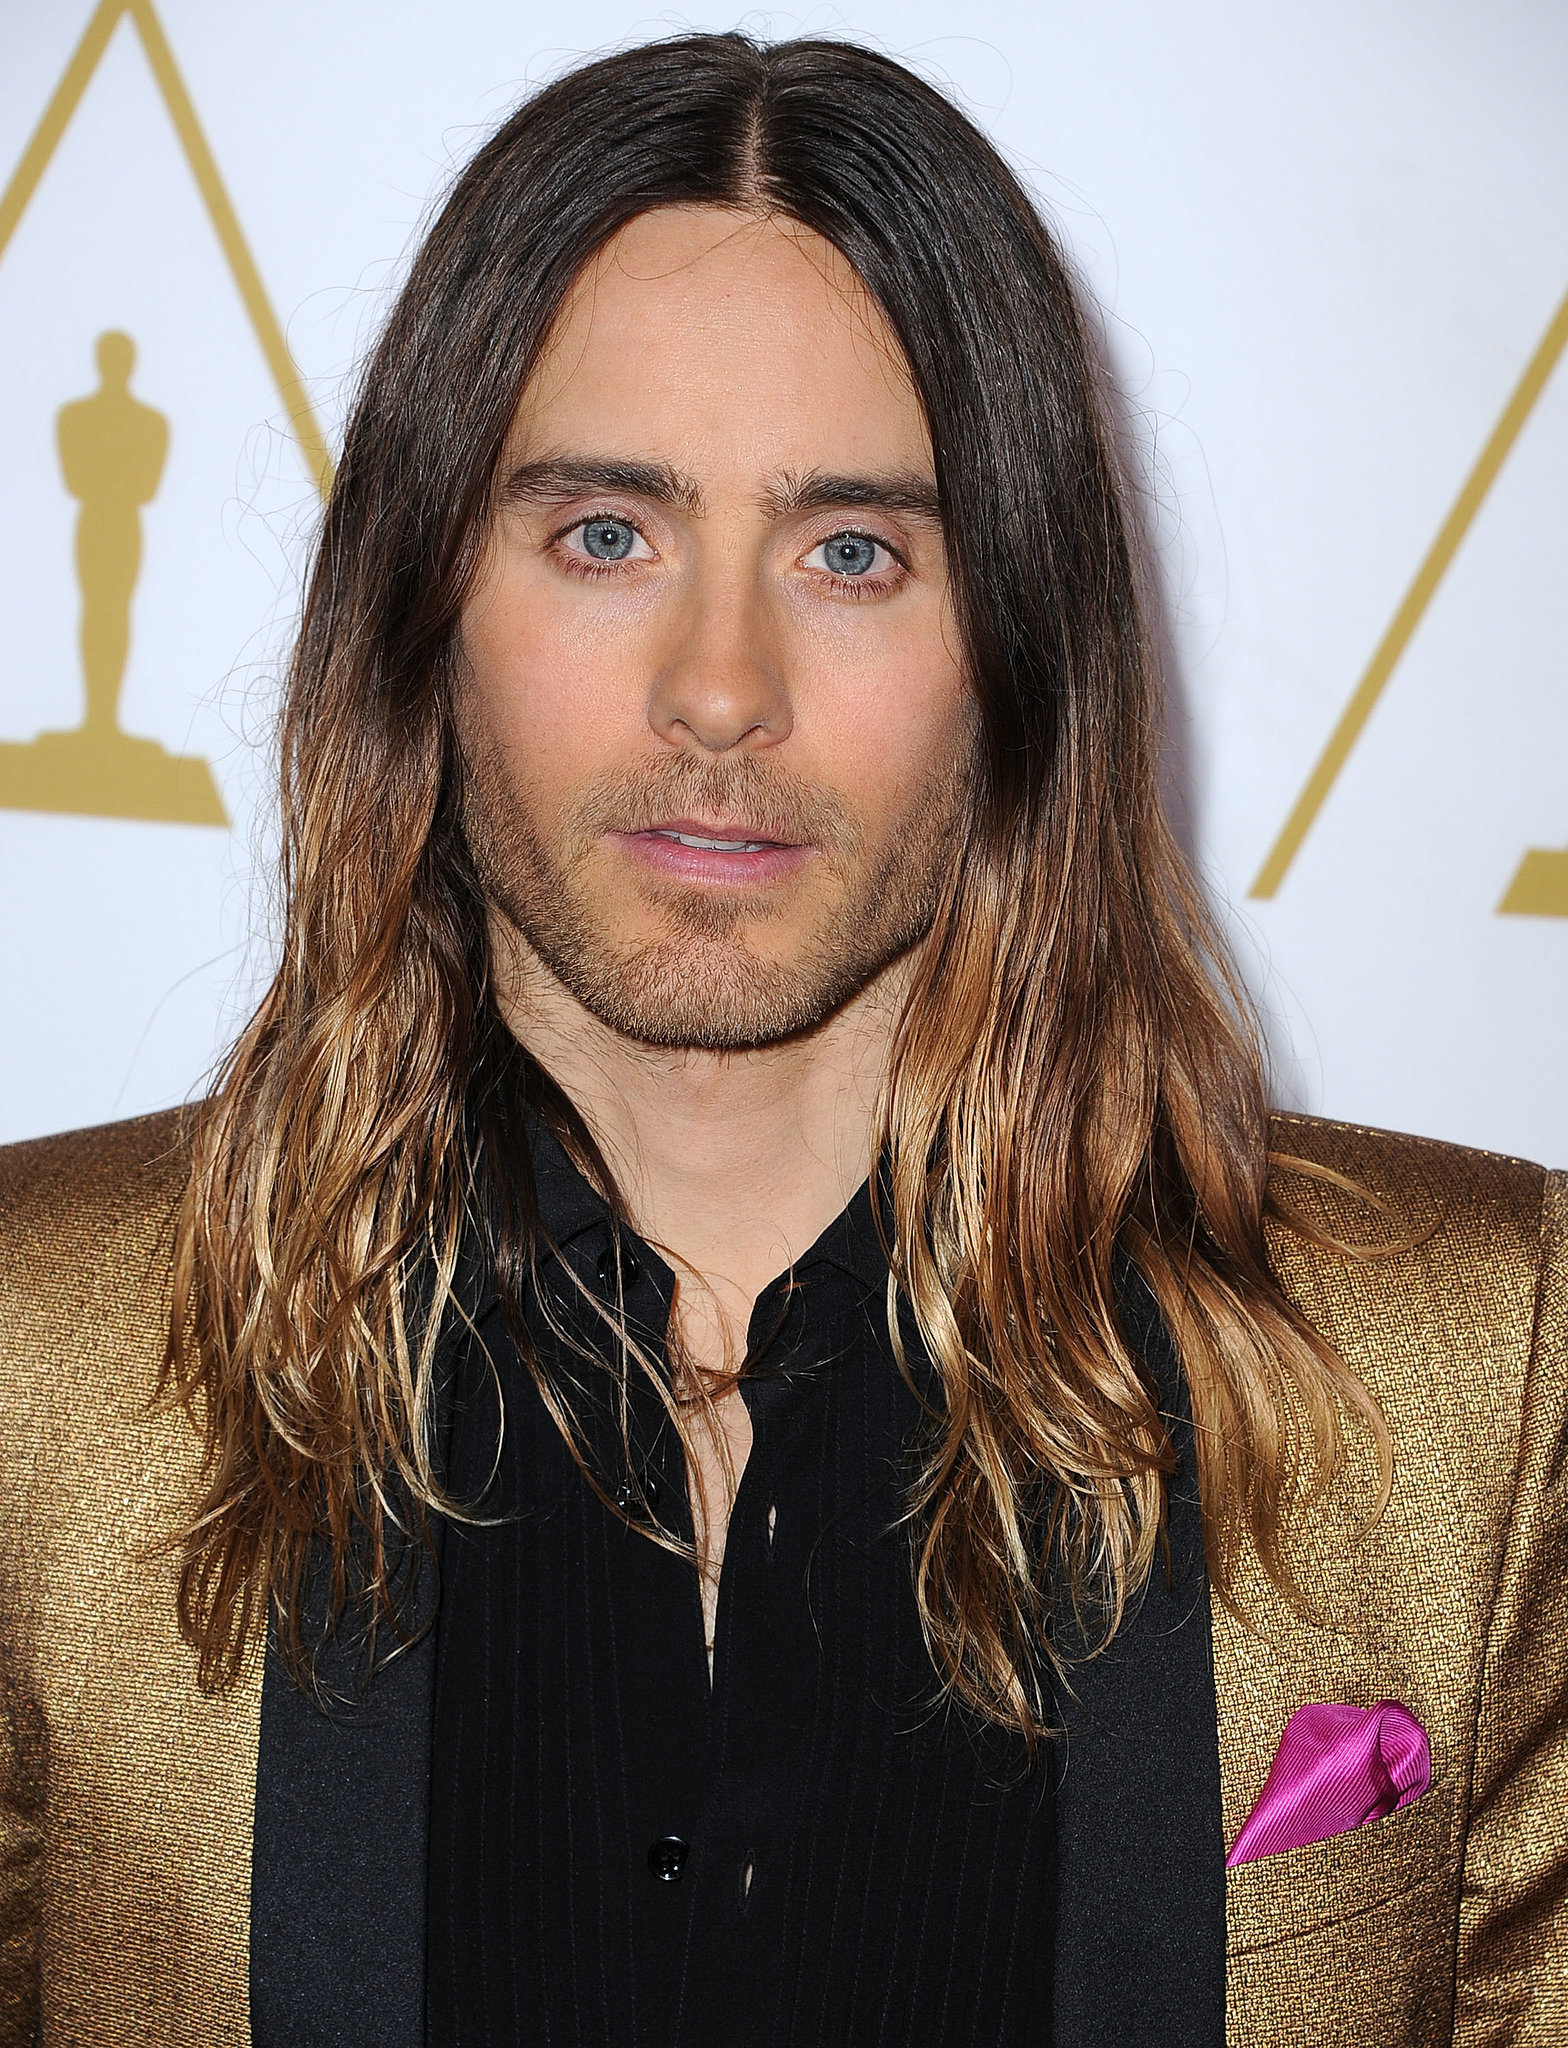 Bun, Wet, or Waves: Help Jared Leto Pick an Oscars Hairstyle!